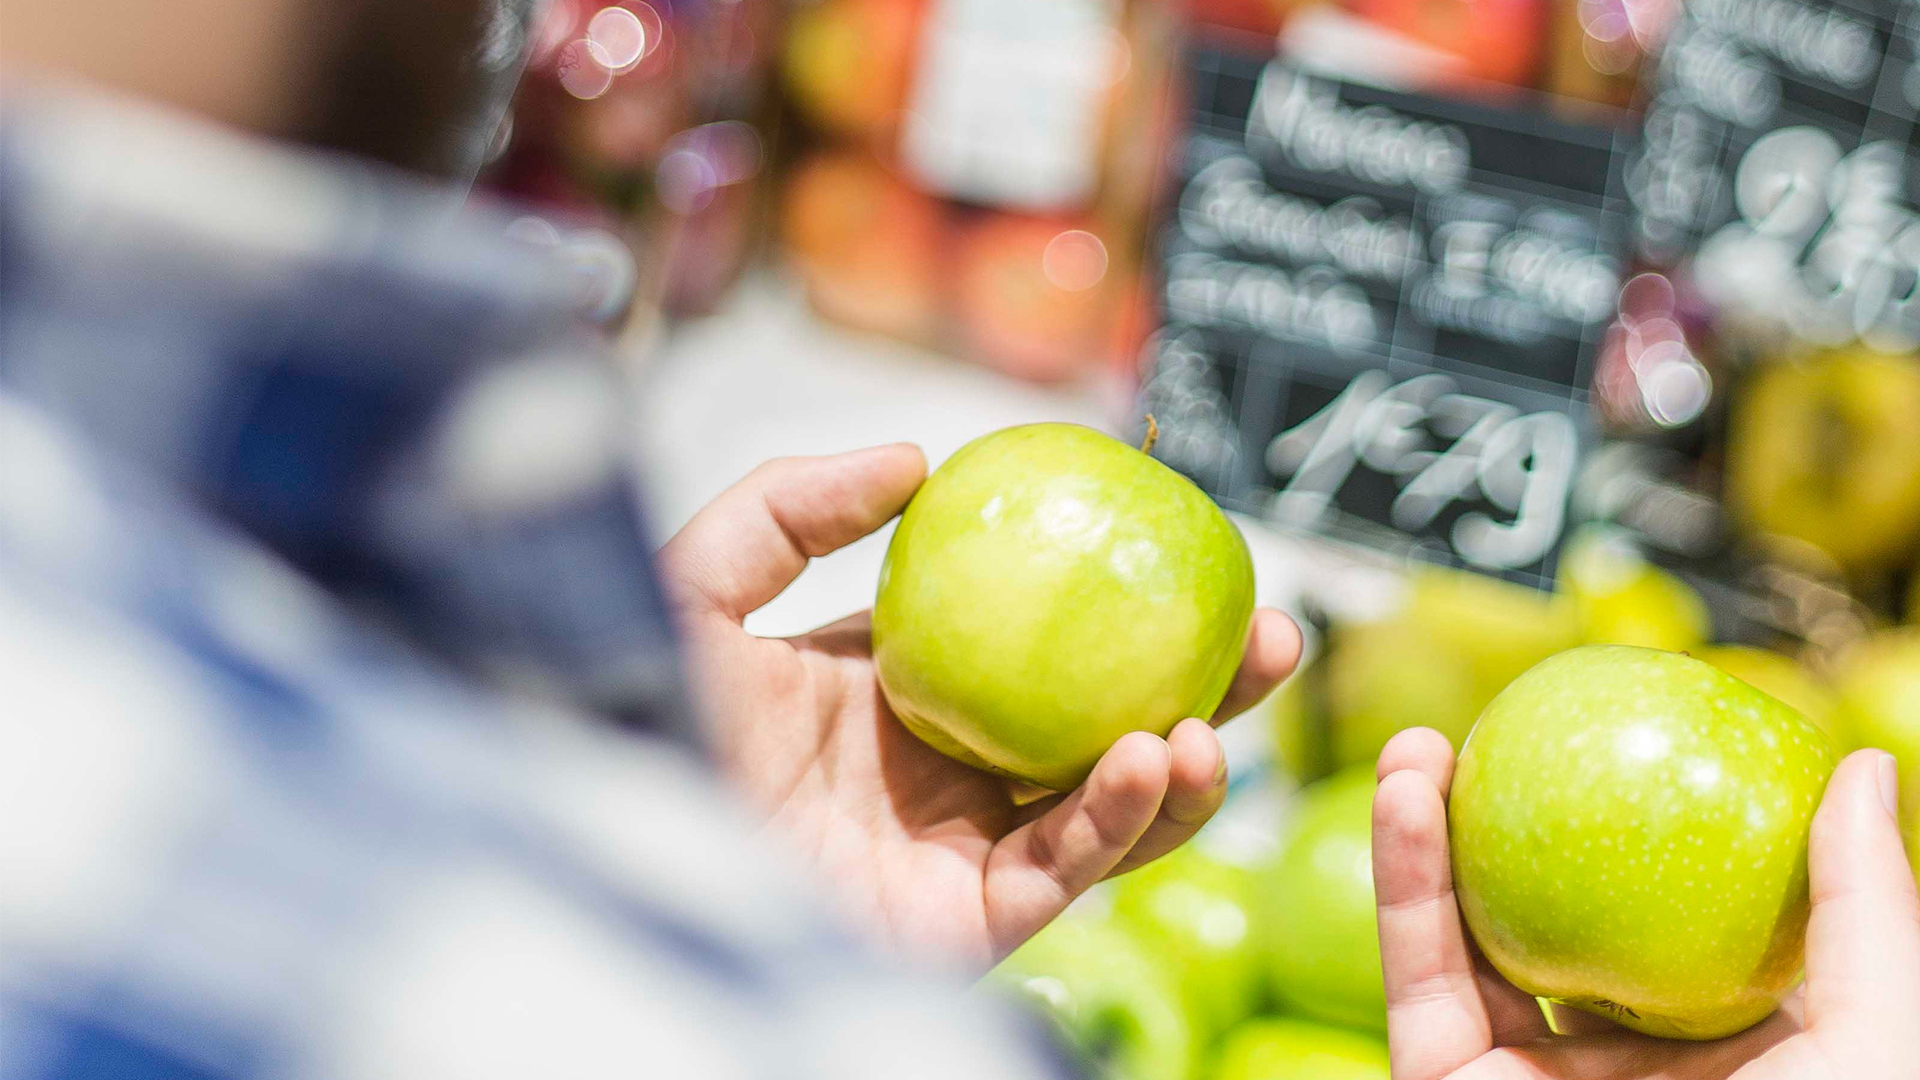 Grocers could face a tough time in the coming year